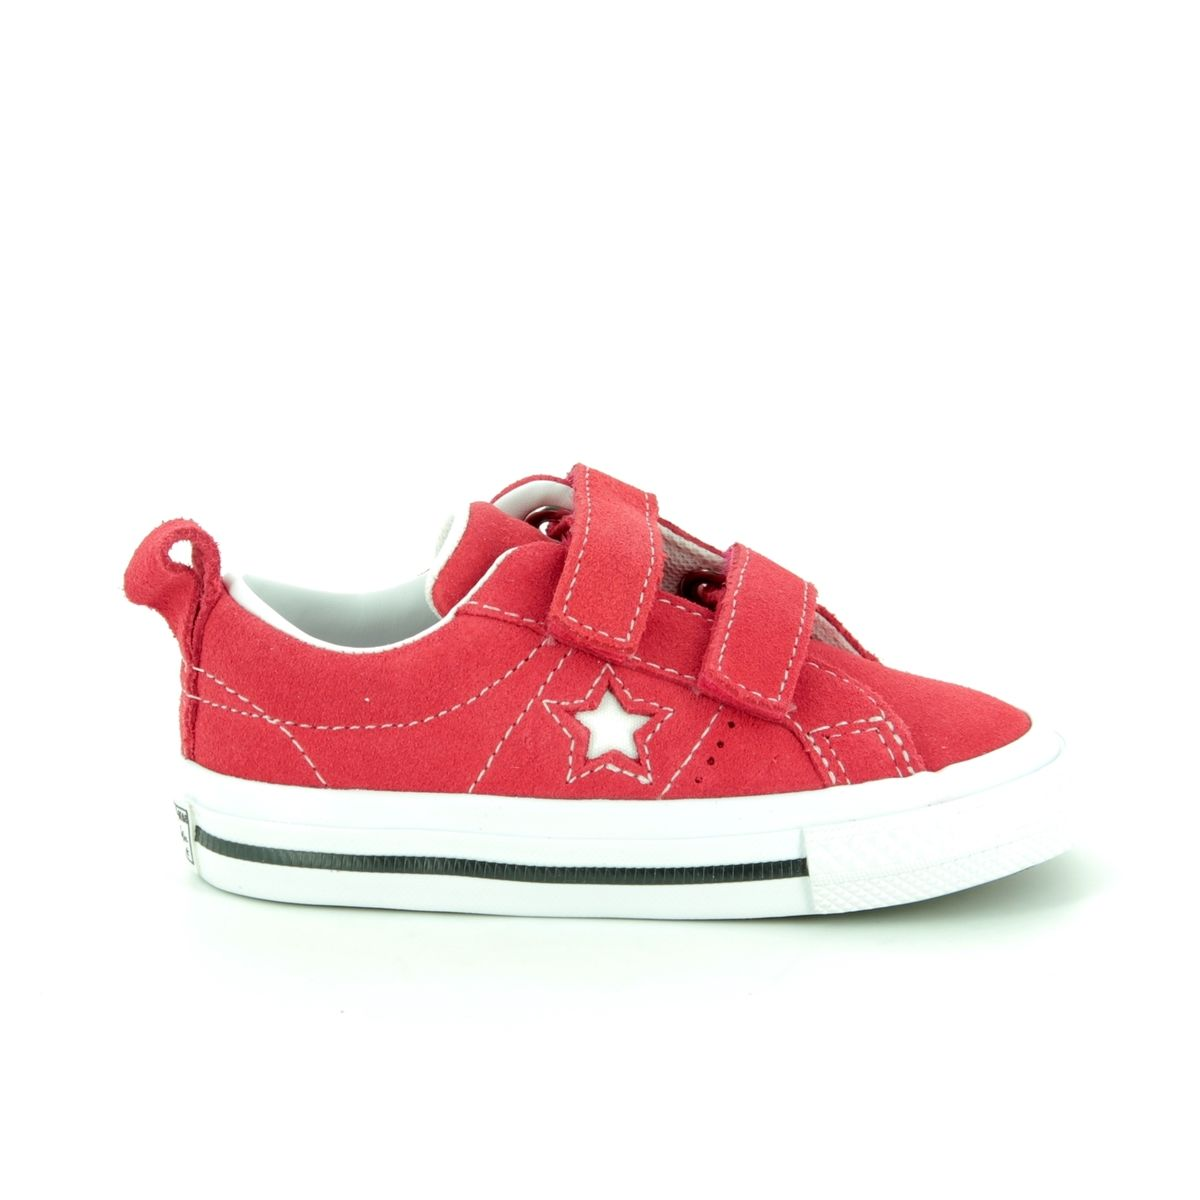 55213ed237ae Converse Trainers - Red - 758493C 600 ONESTAR VEL IN